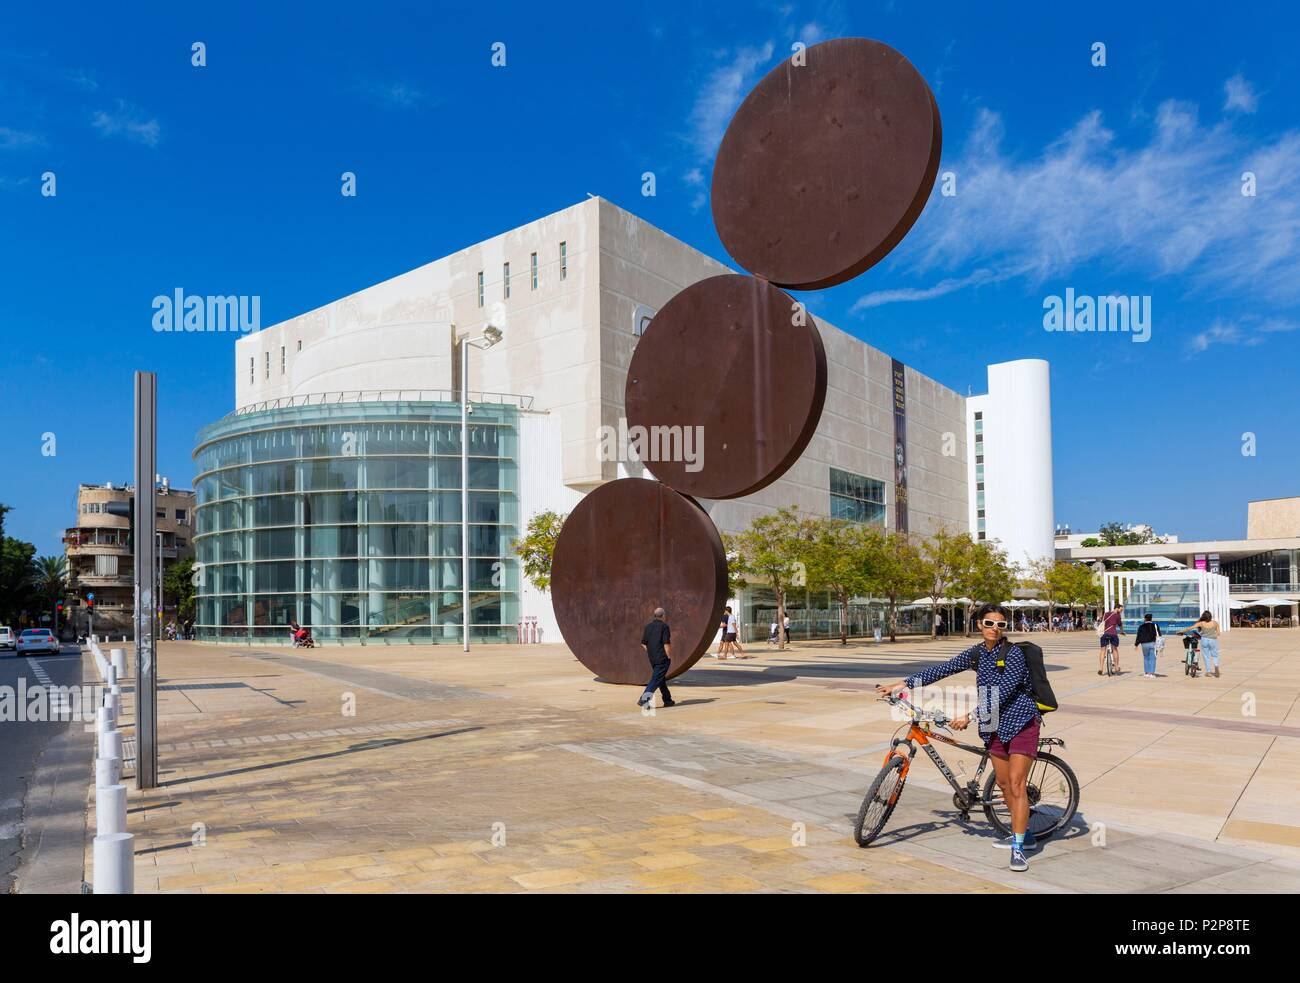 Israel, Tel Aviv-Jaffa, Tel-Aviv, the city center, Habima Square and the Habima Theater, the national theater of Israel, an expression of the spirit of the Jewish people with a particular focus on Hebrew culture and language, sculpture Uprise by Menashe Kadishman - Stock Image